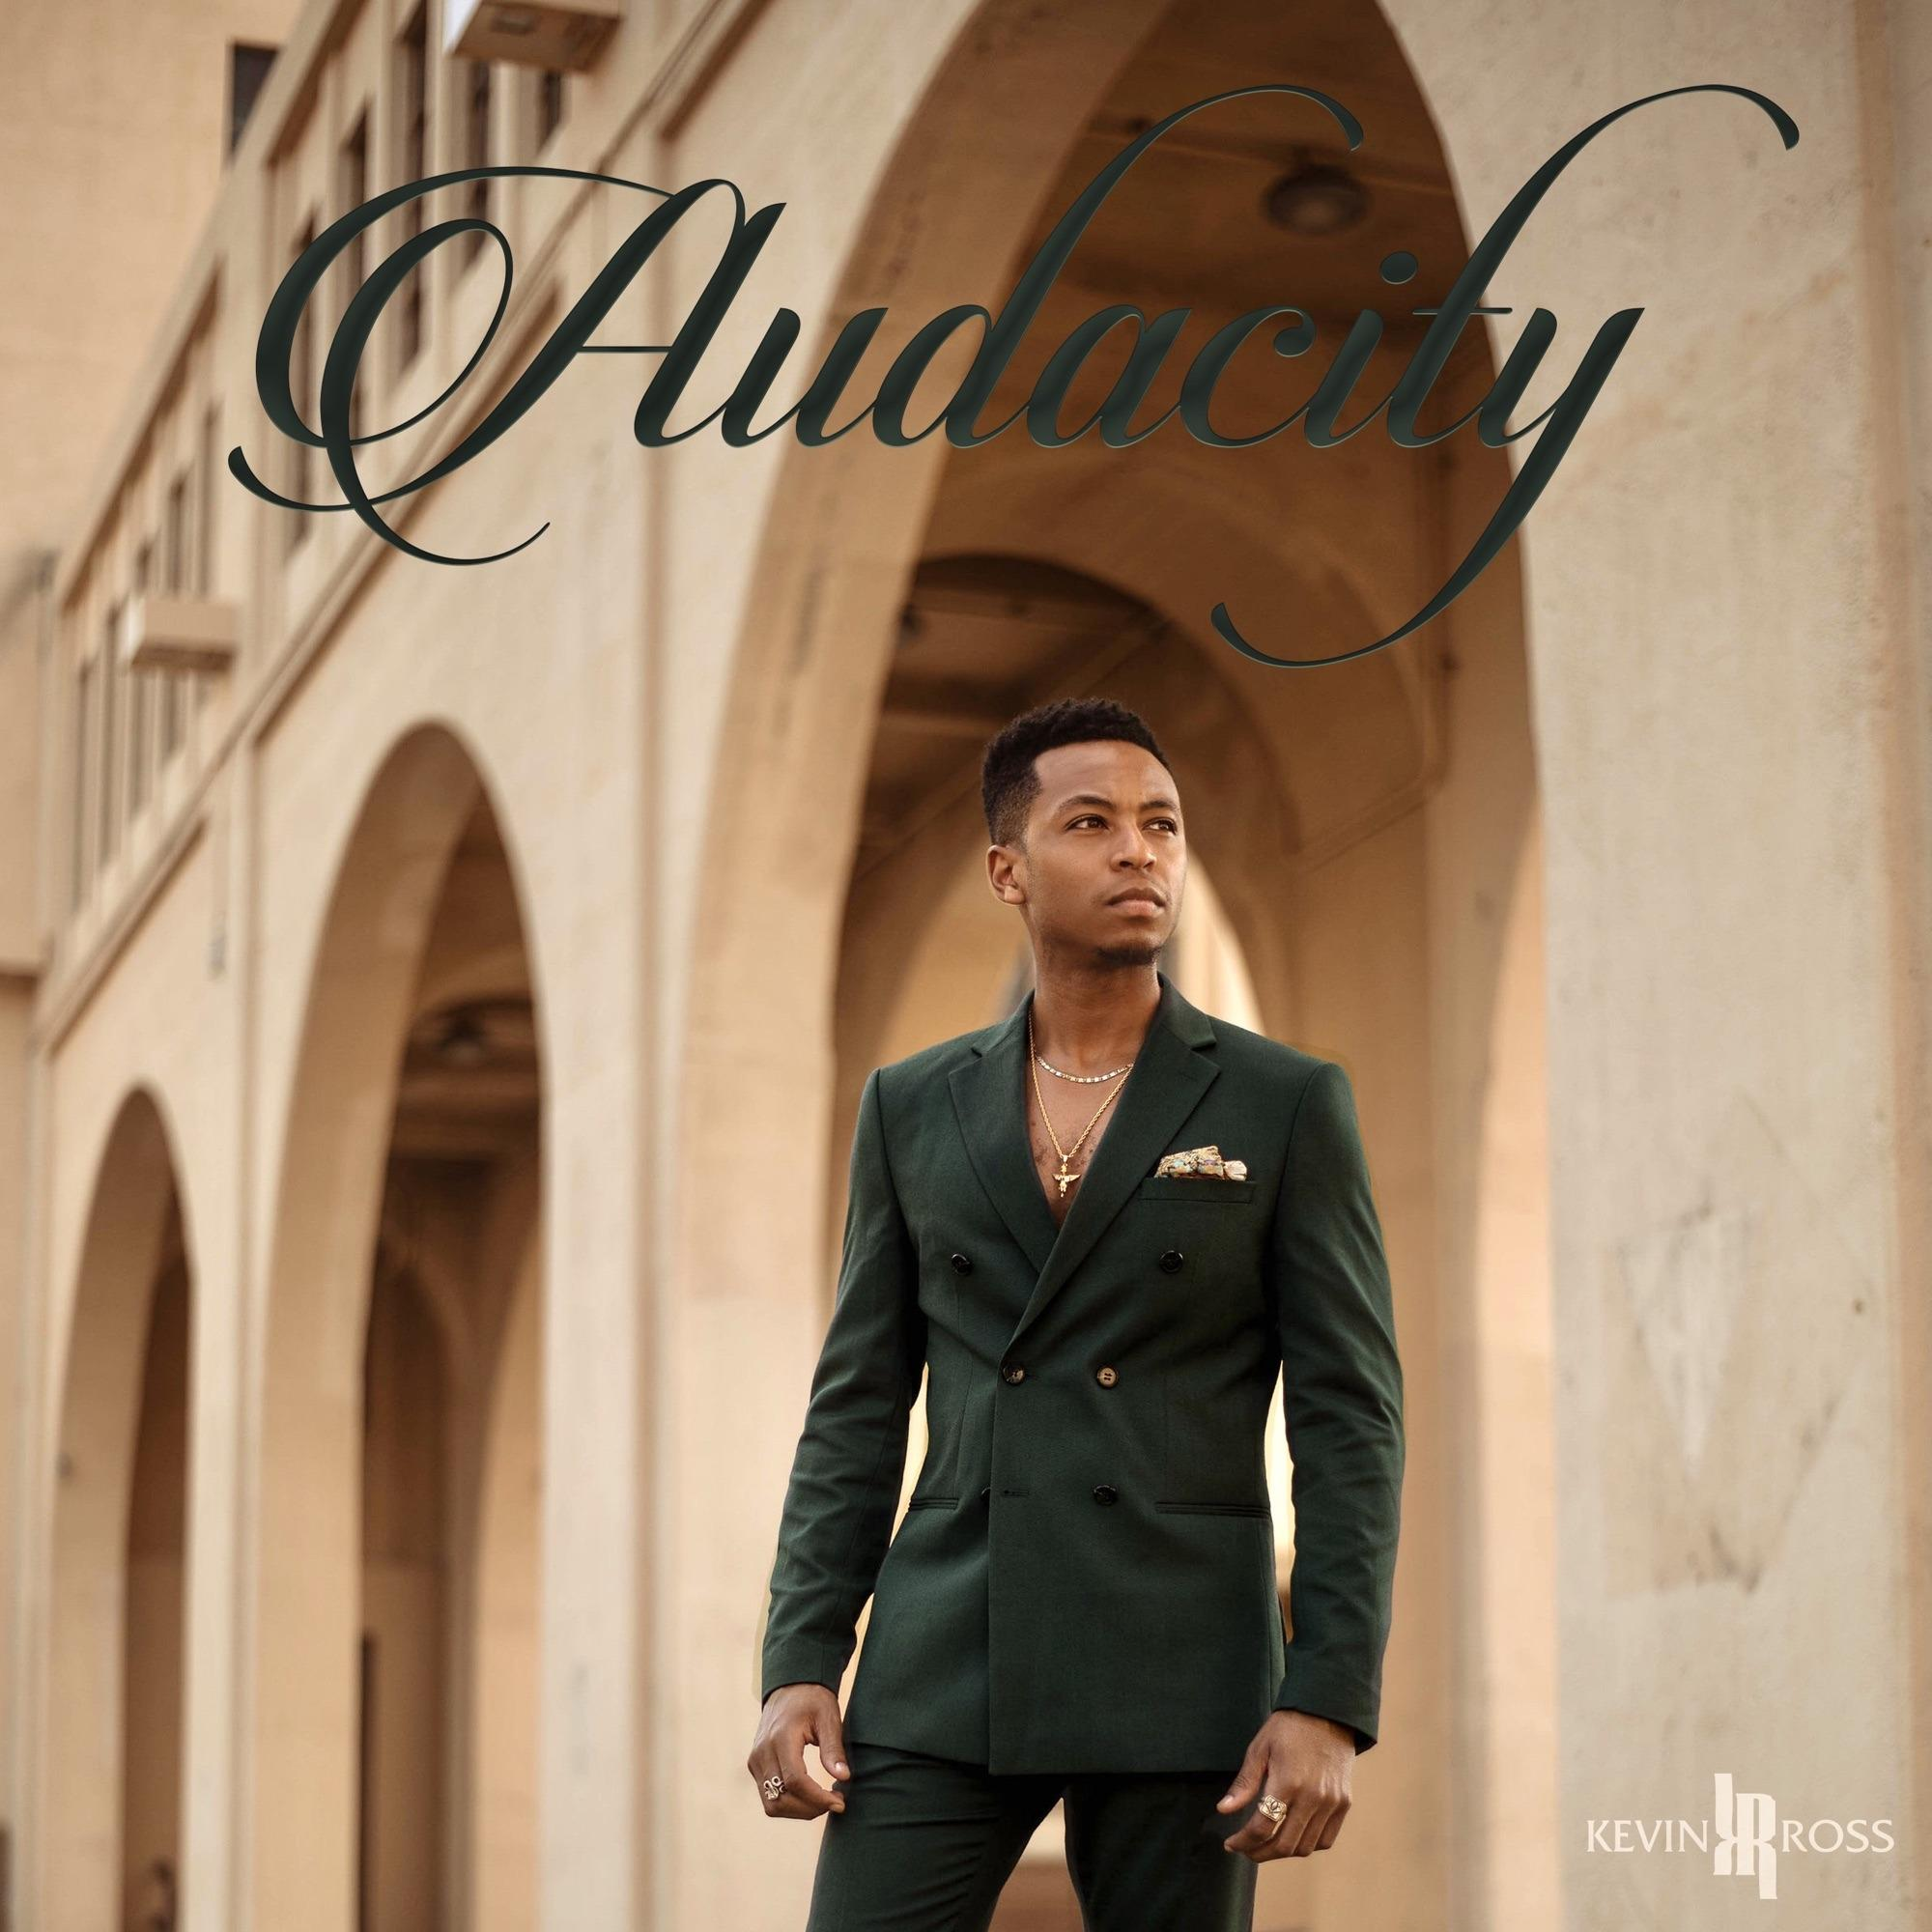 Kevin Ross - Audacity, Vol. 1